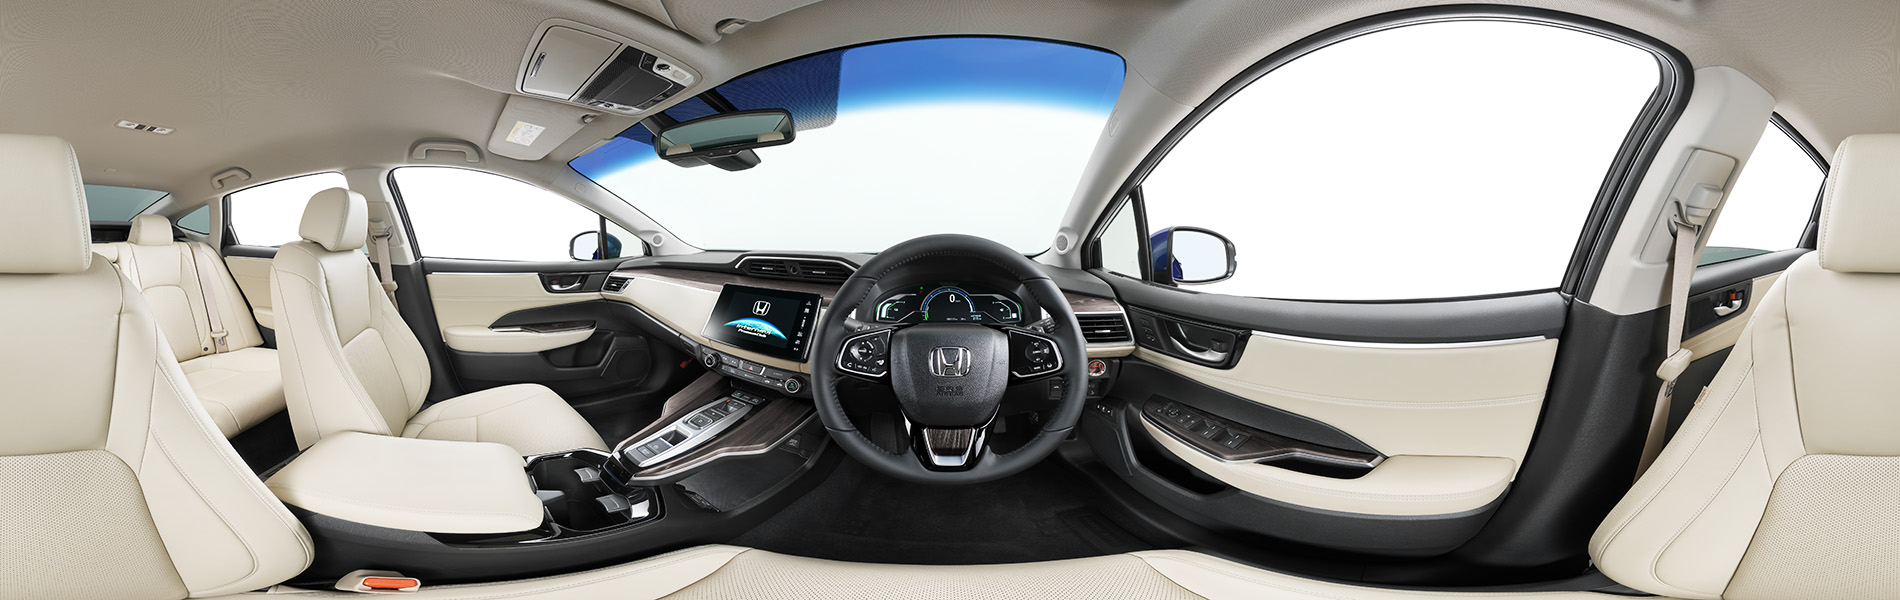 HONDA CLARITY Interior Panorama VR